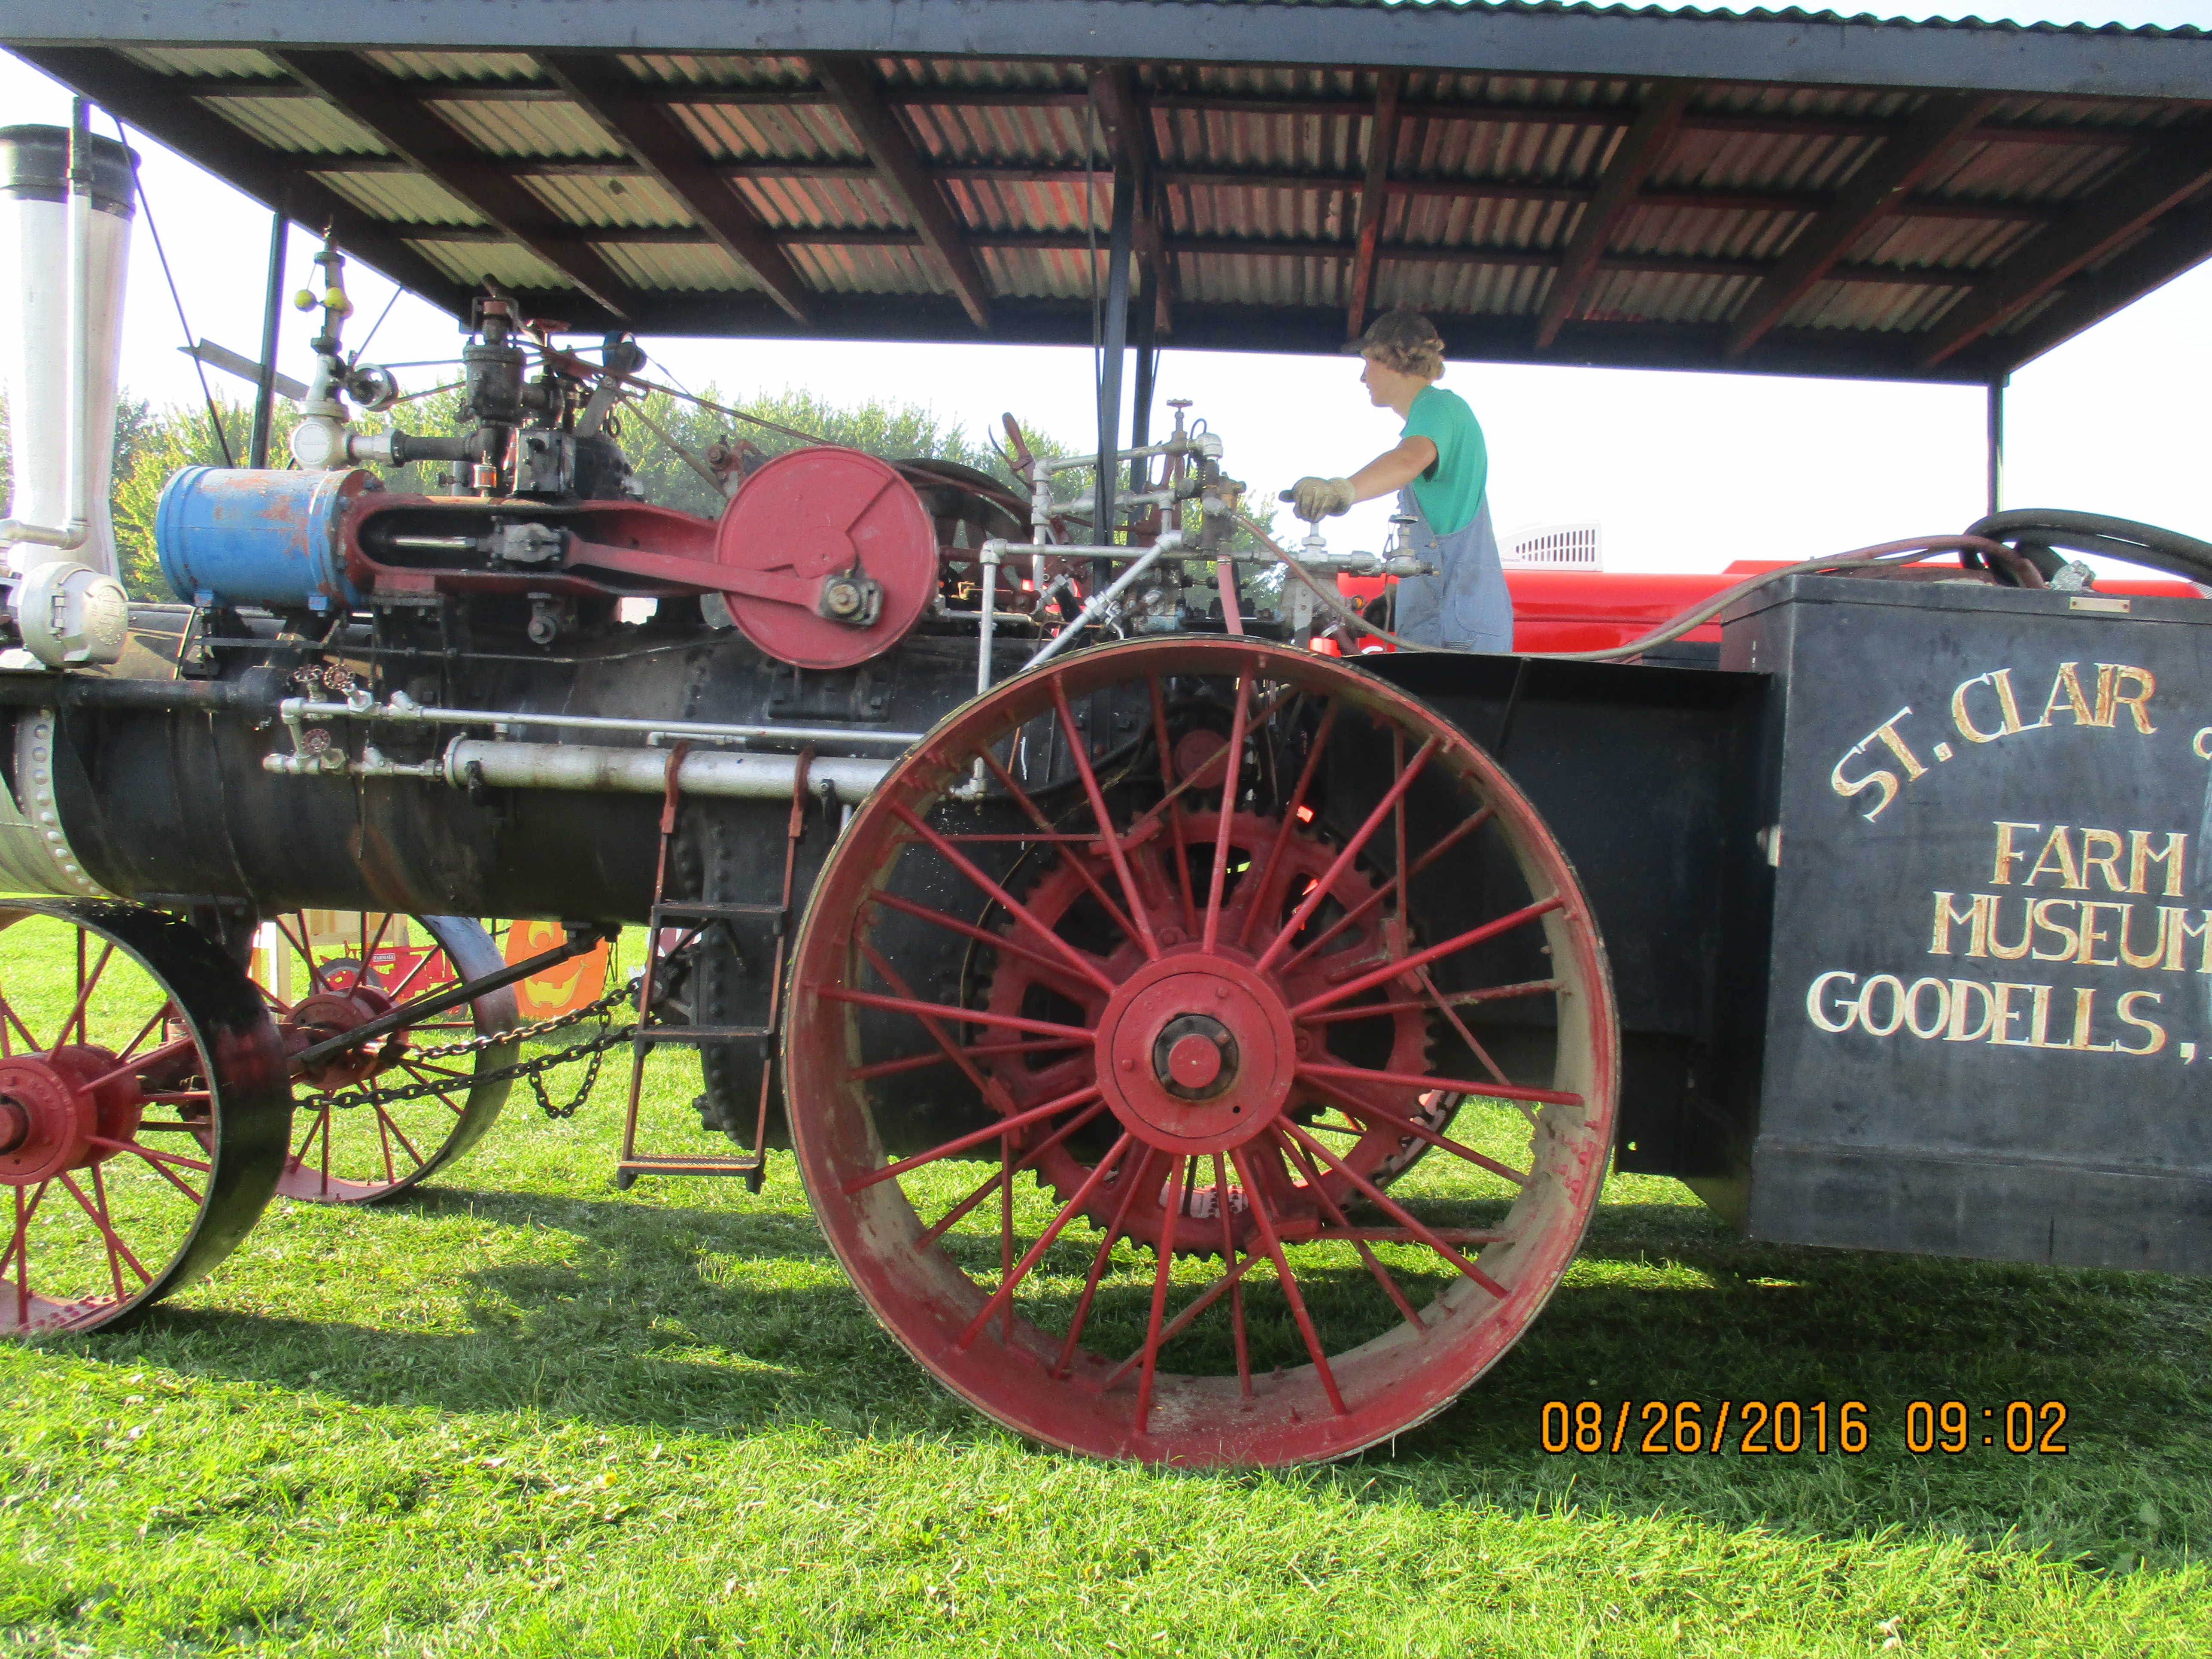 Goodells County Farm Museum Halloween 2020 Harvest Days | Don't Eat It! Soap and Skin Care